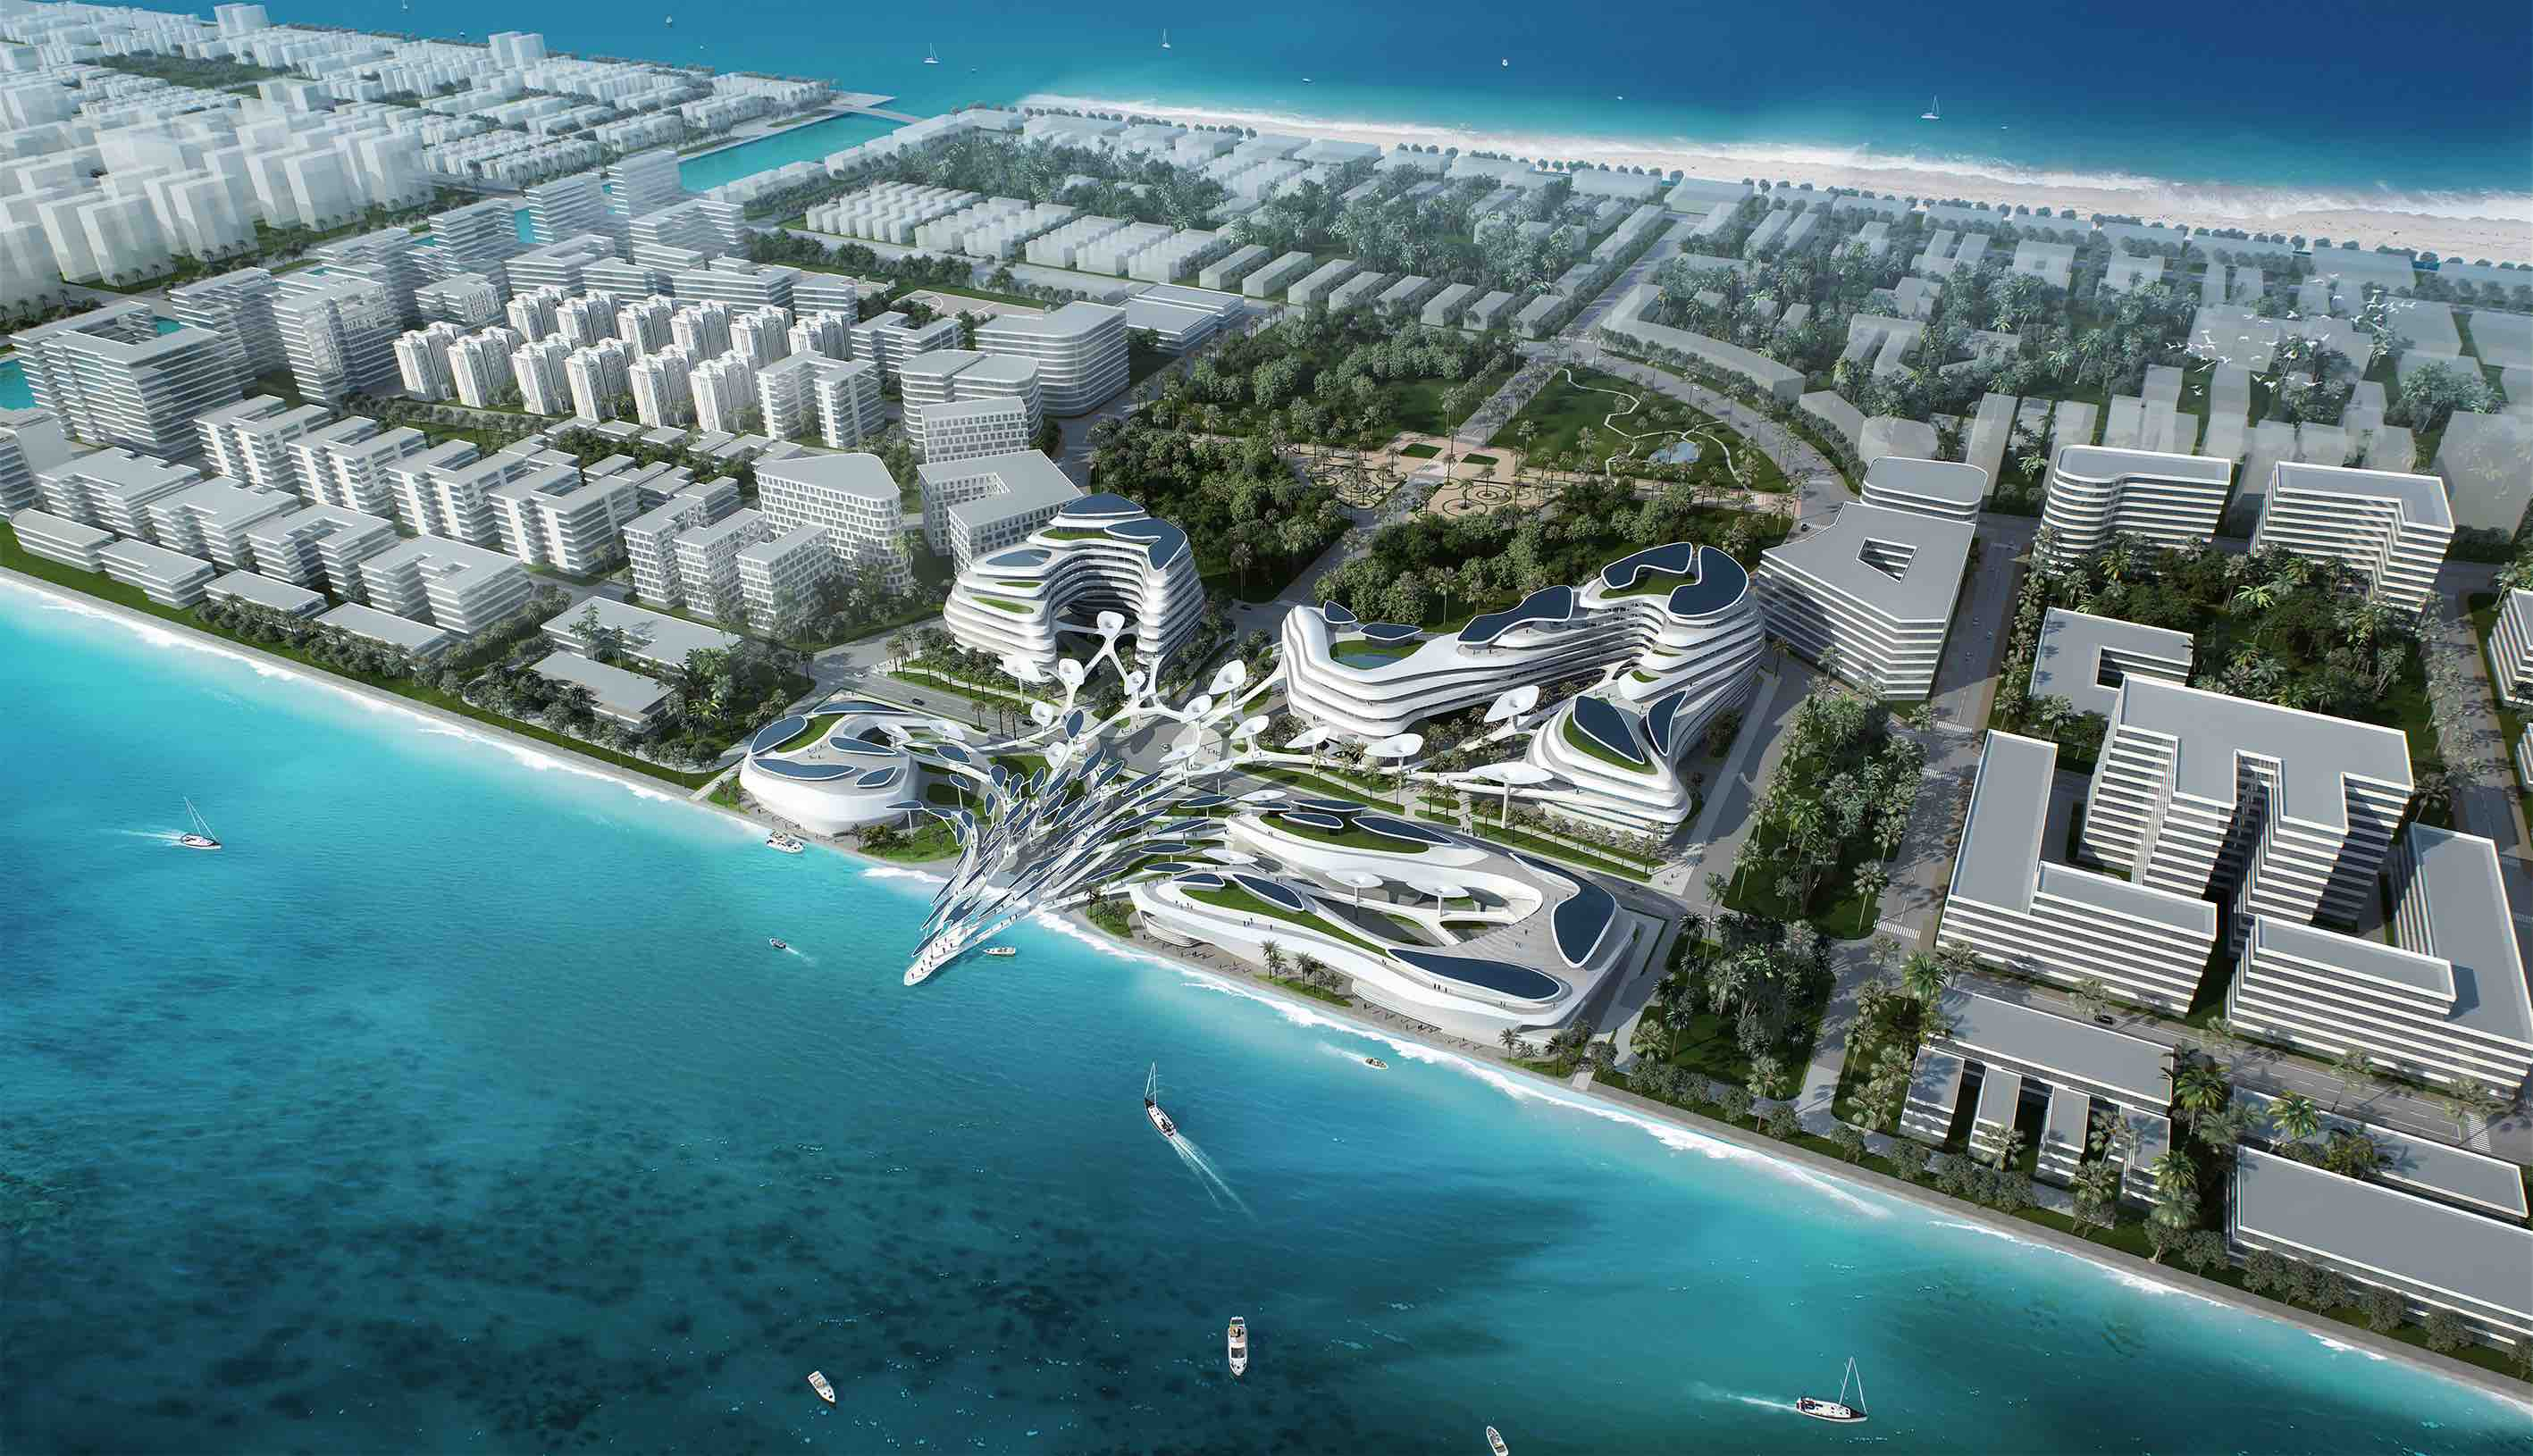 Oceans-Paradise-designed-by-CAA-Architects-001